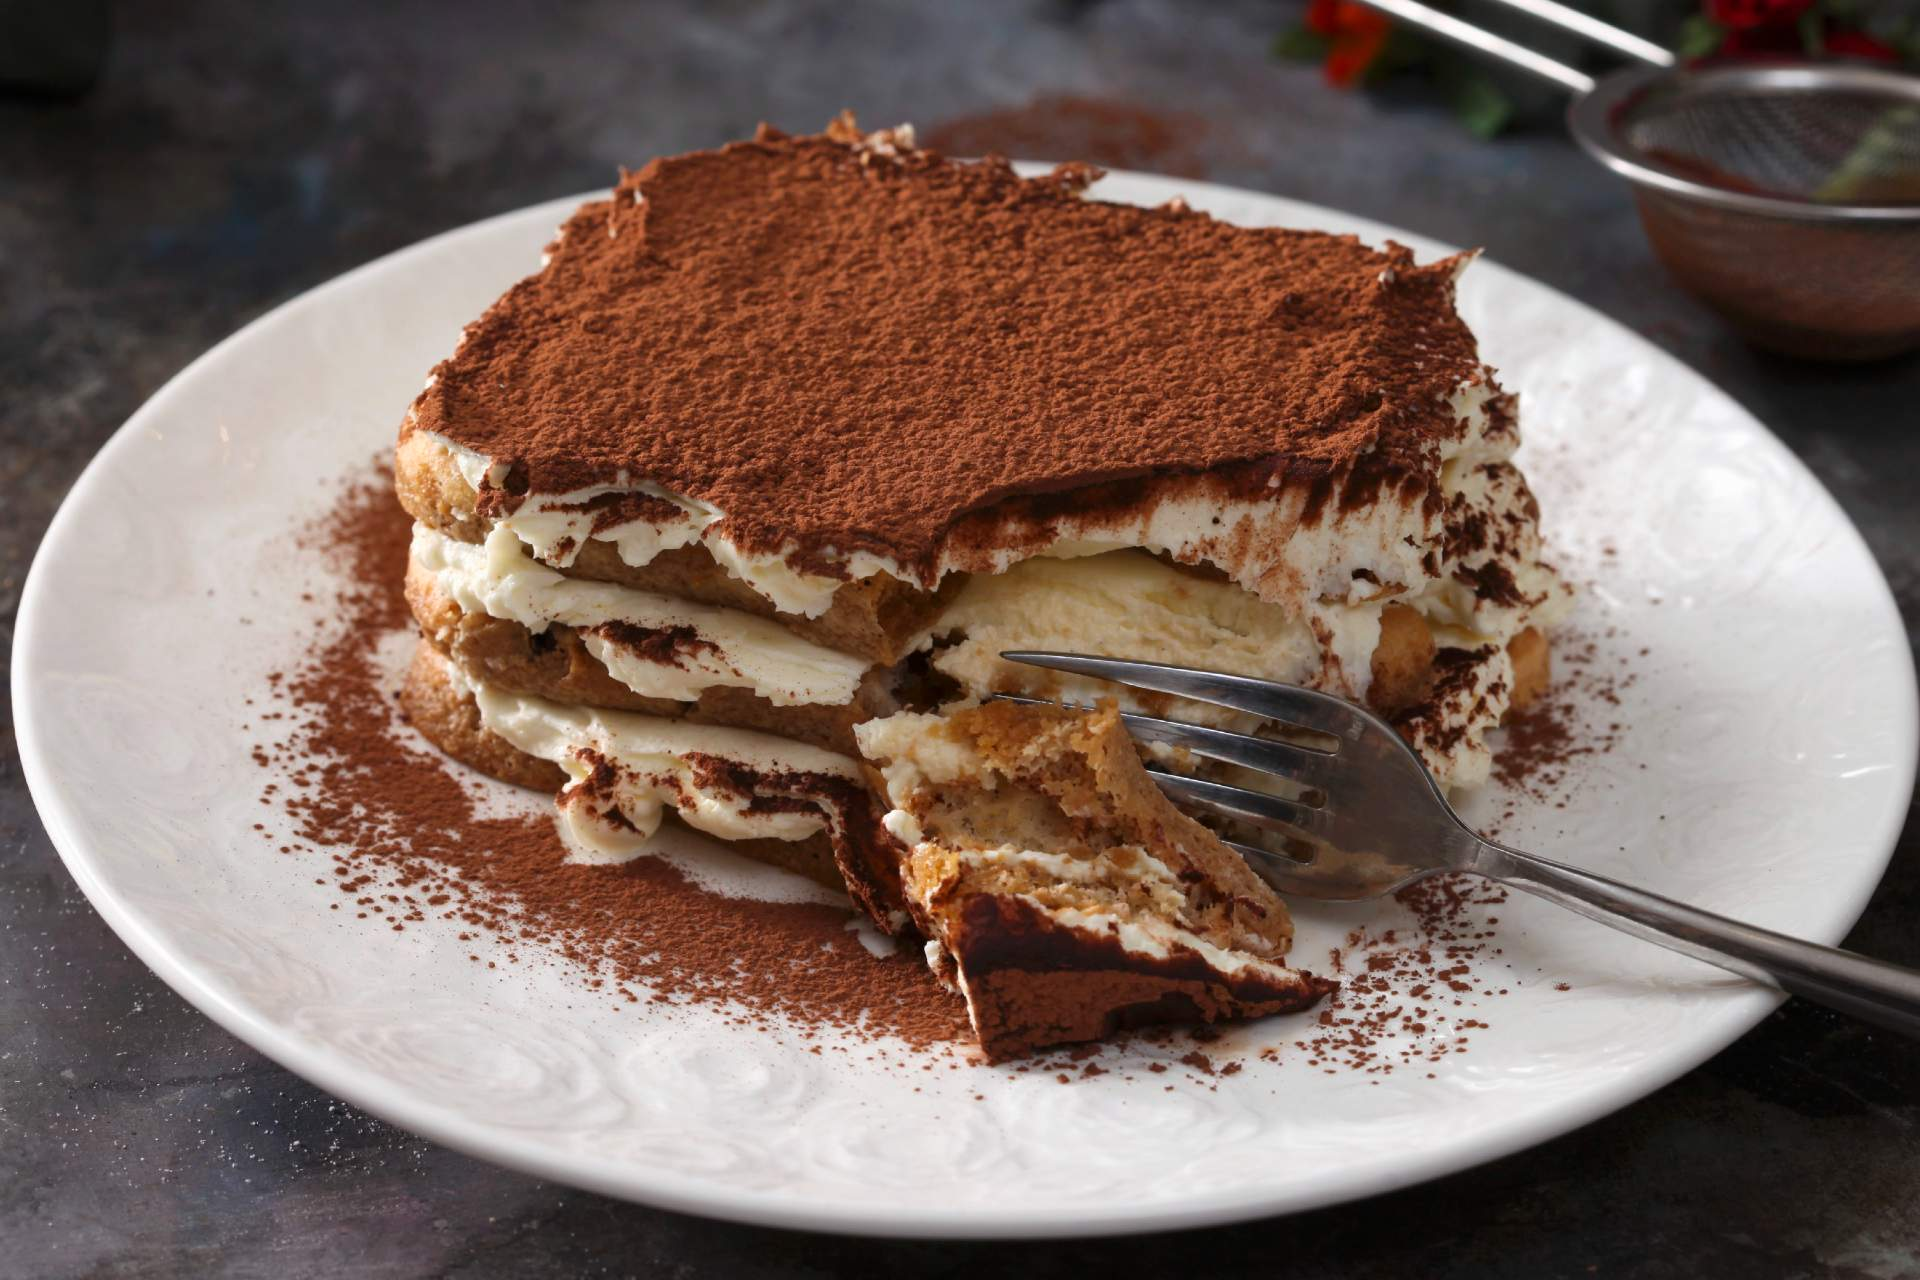 piece of tiramisu on plate ©StockFood Bialy Boguslaw